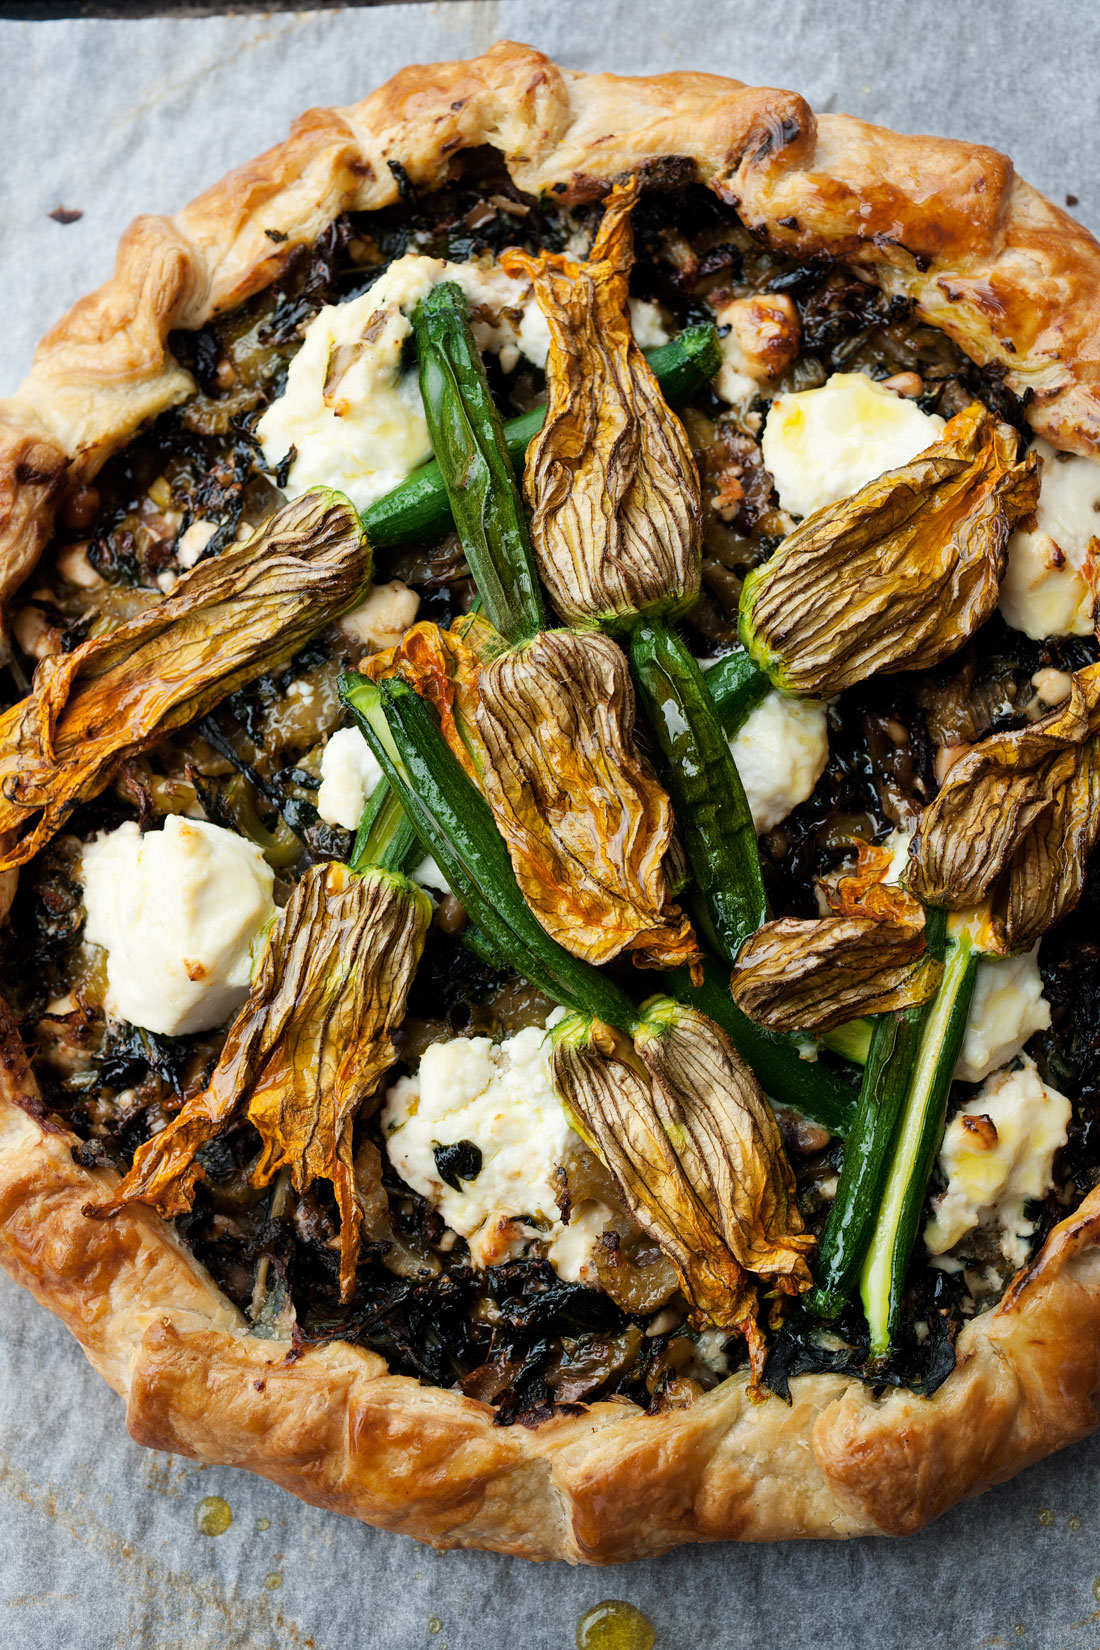 Corsican pie with zucchini flowers recipe : SBS Food